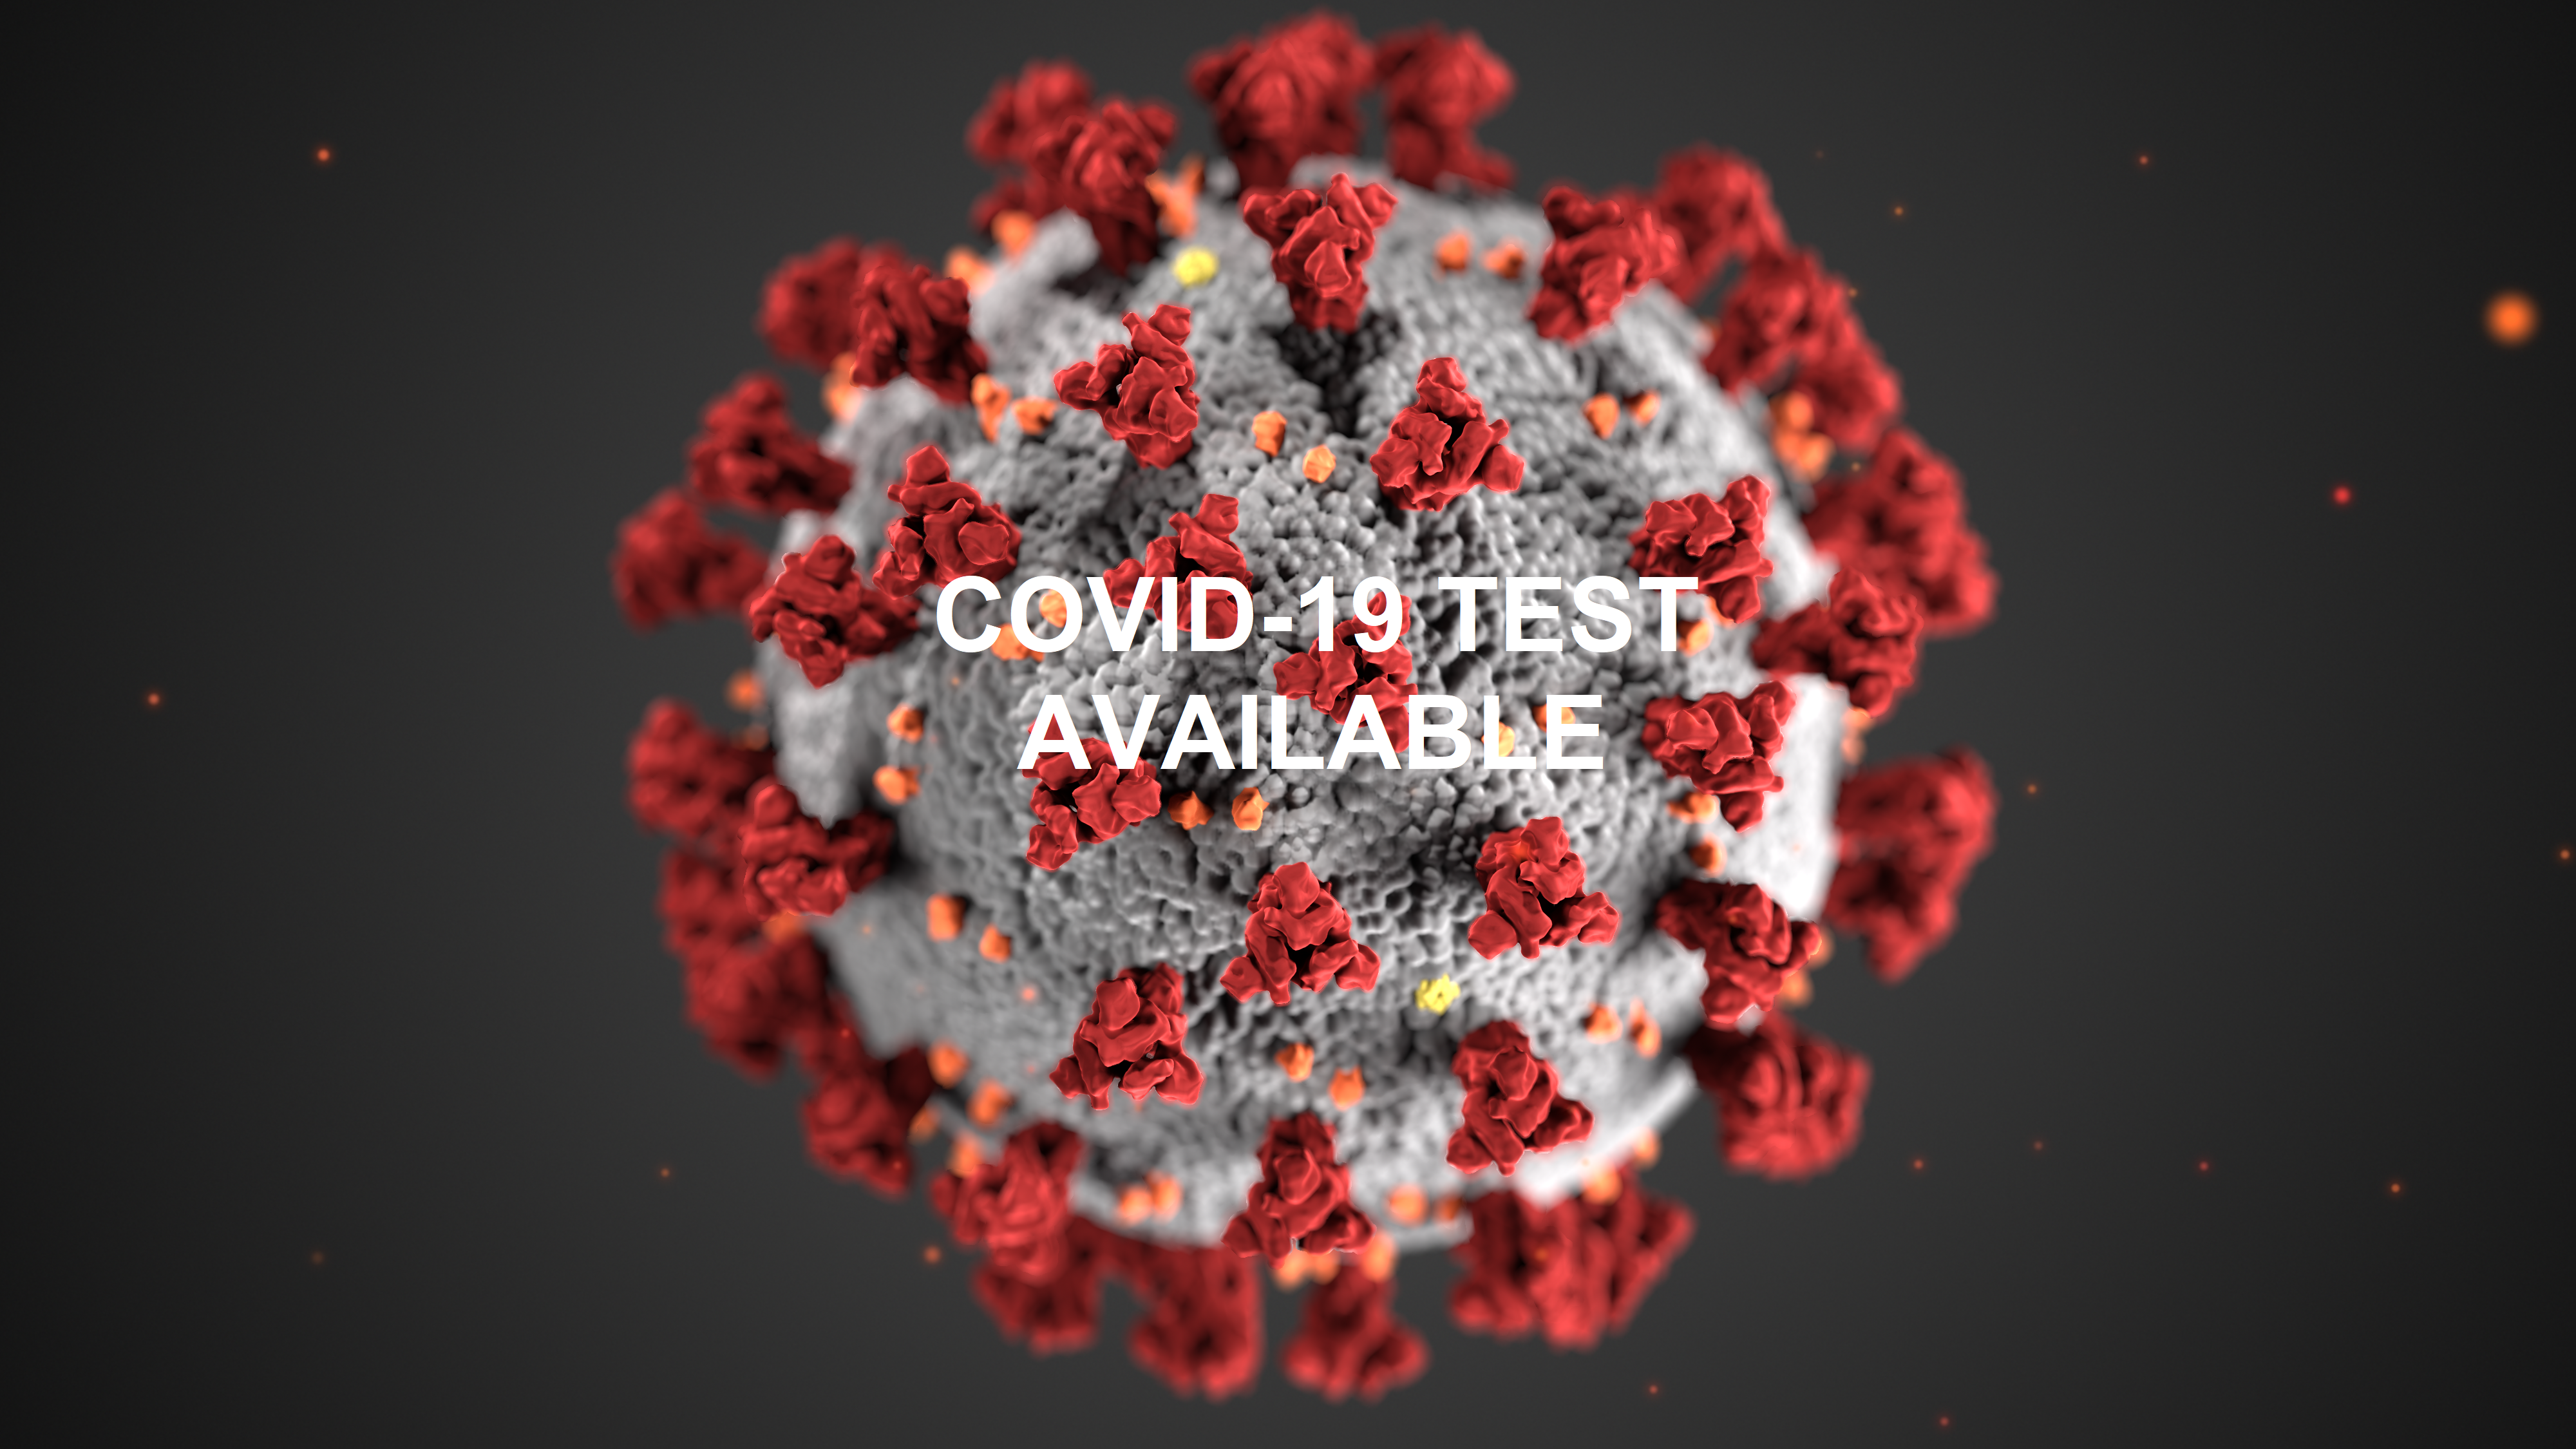 Covid-19 Test Available